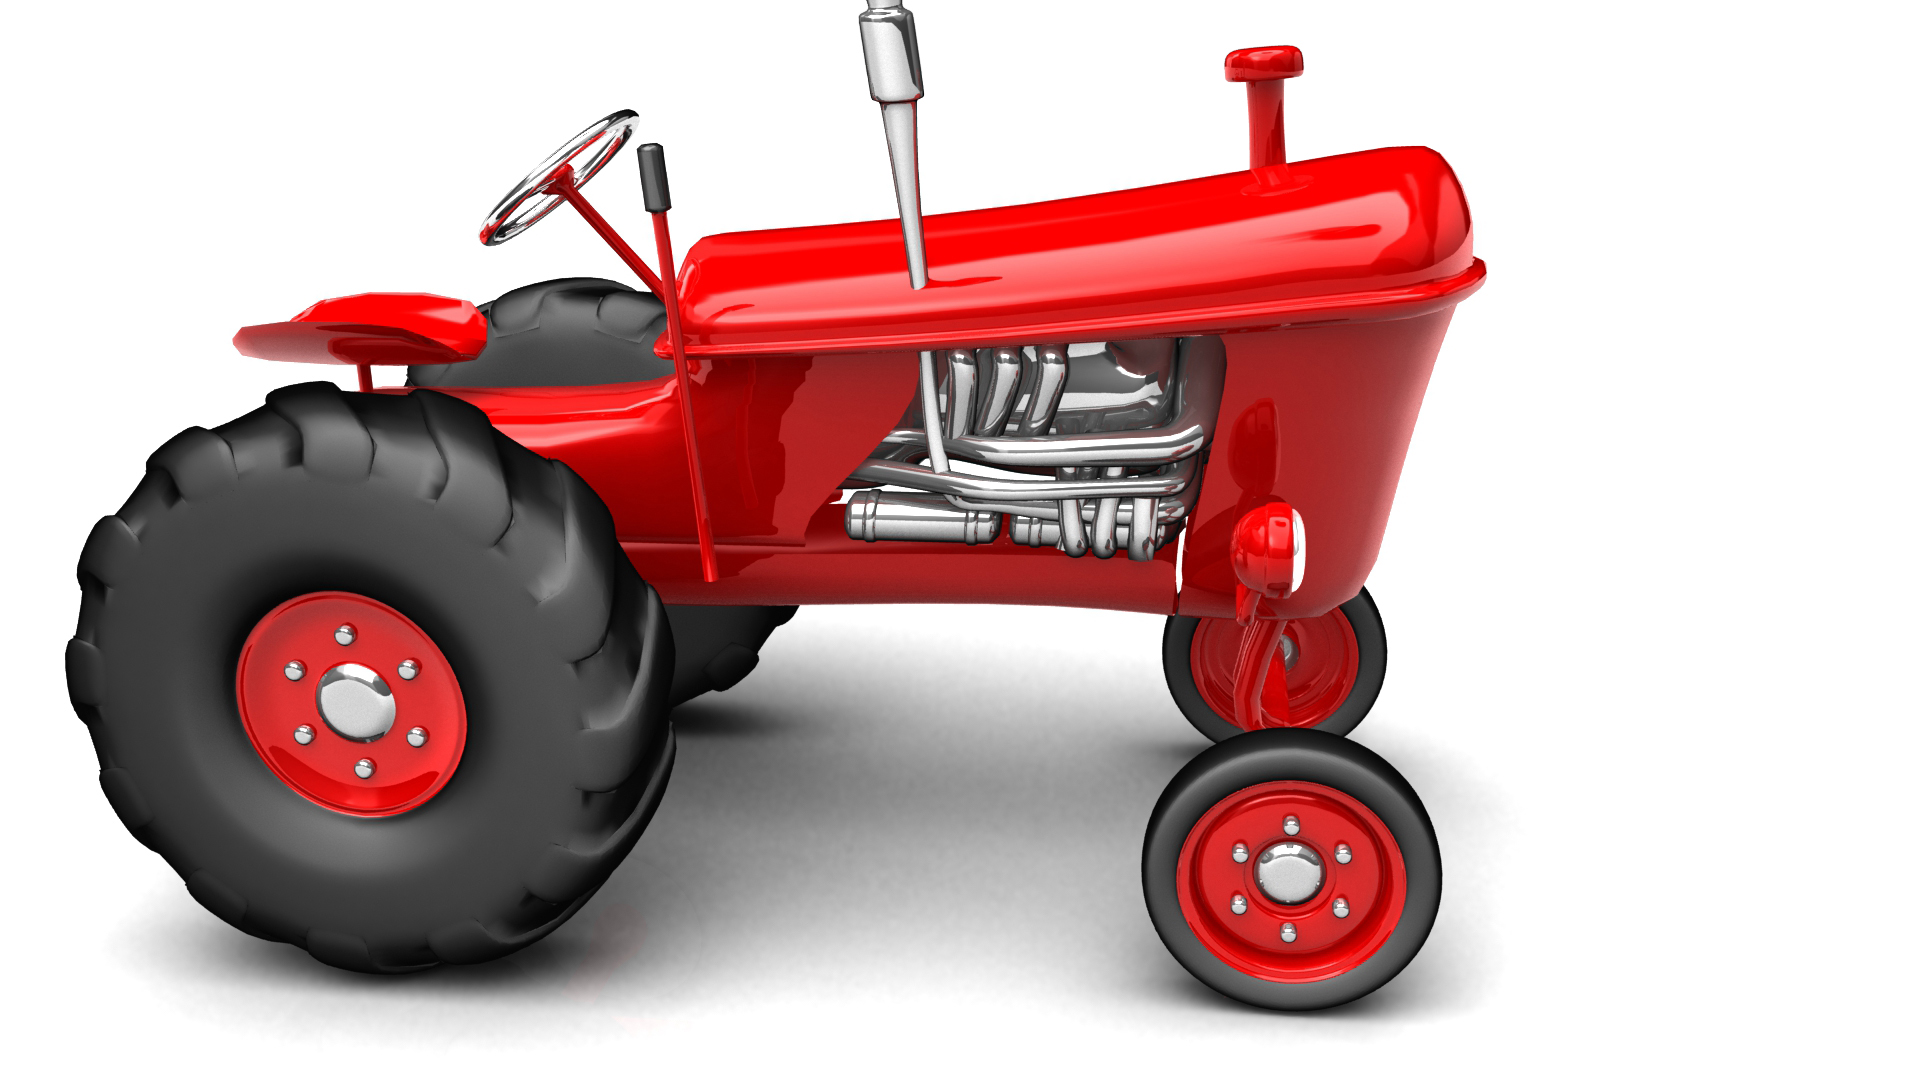 vintage tractor clipart - photo #38